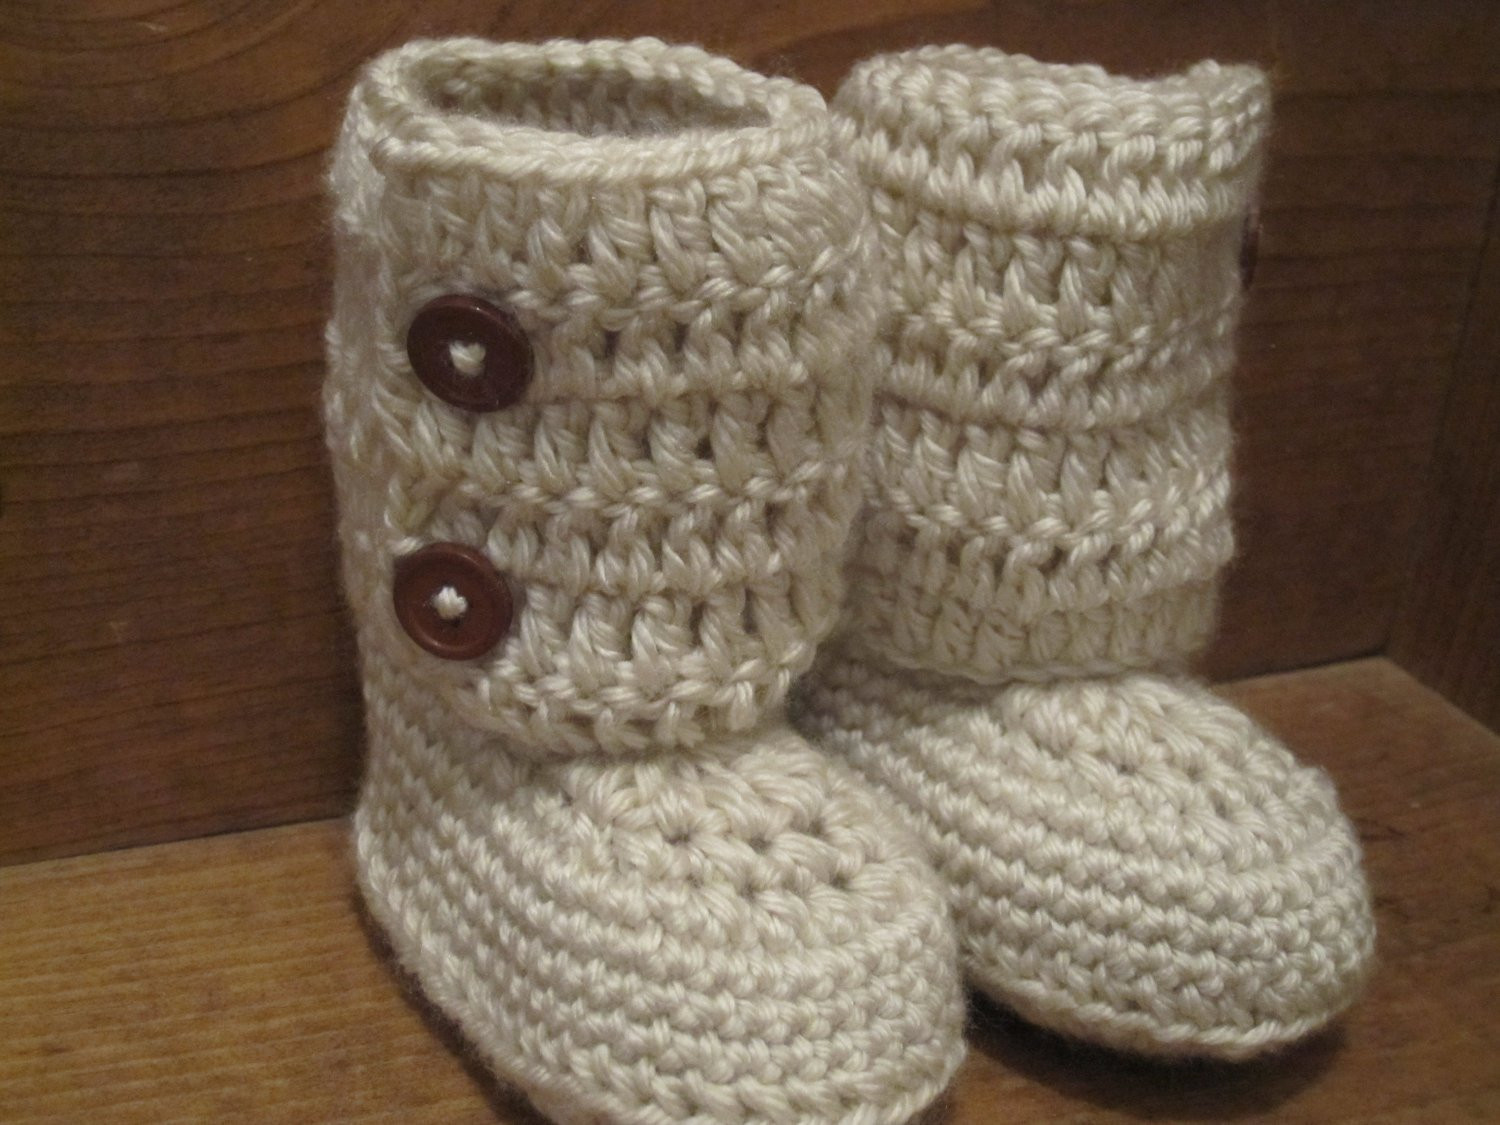 Inspirational Baby Ankle Boots Crochet Baby Booties Crochet Newborn Baby Booties Of Incredible 49 Models Crochet Newborn Baby Booties